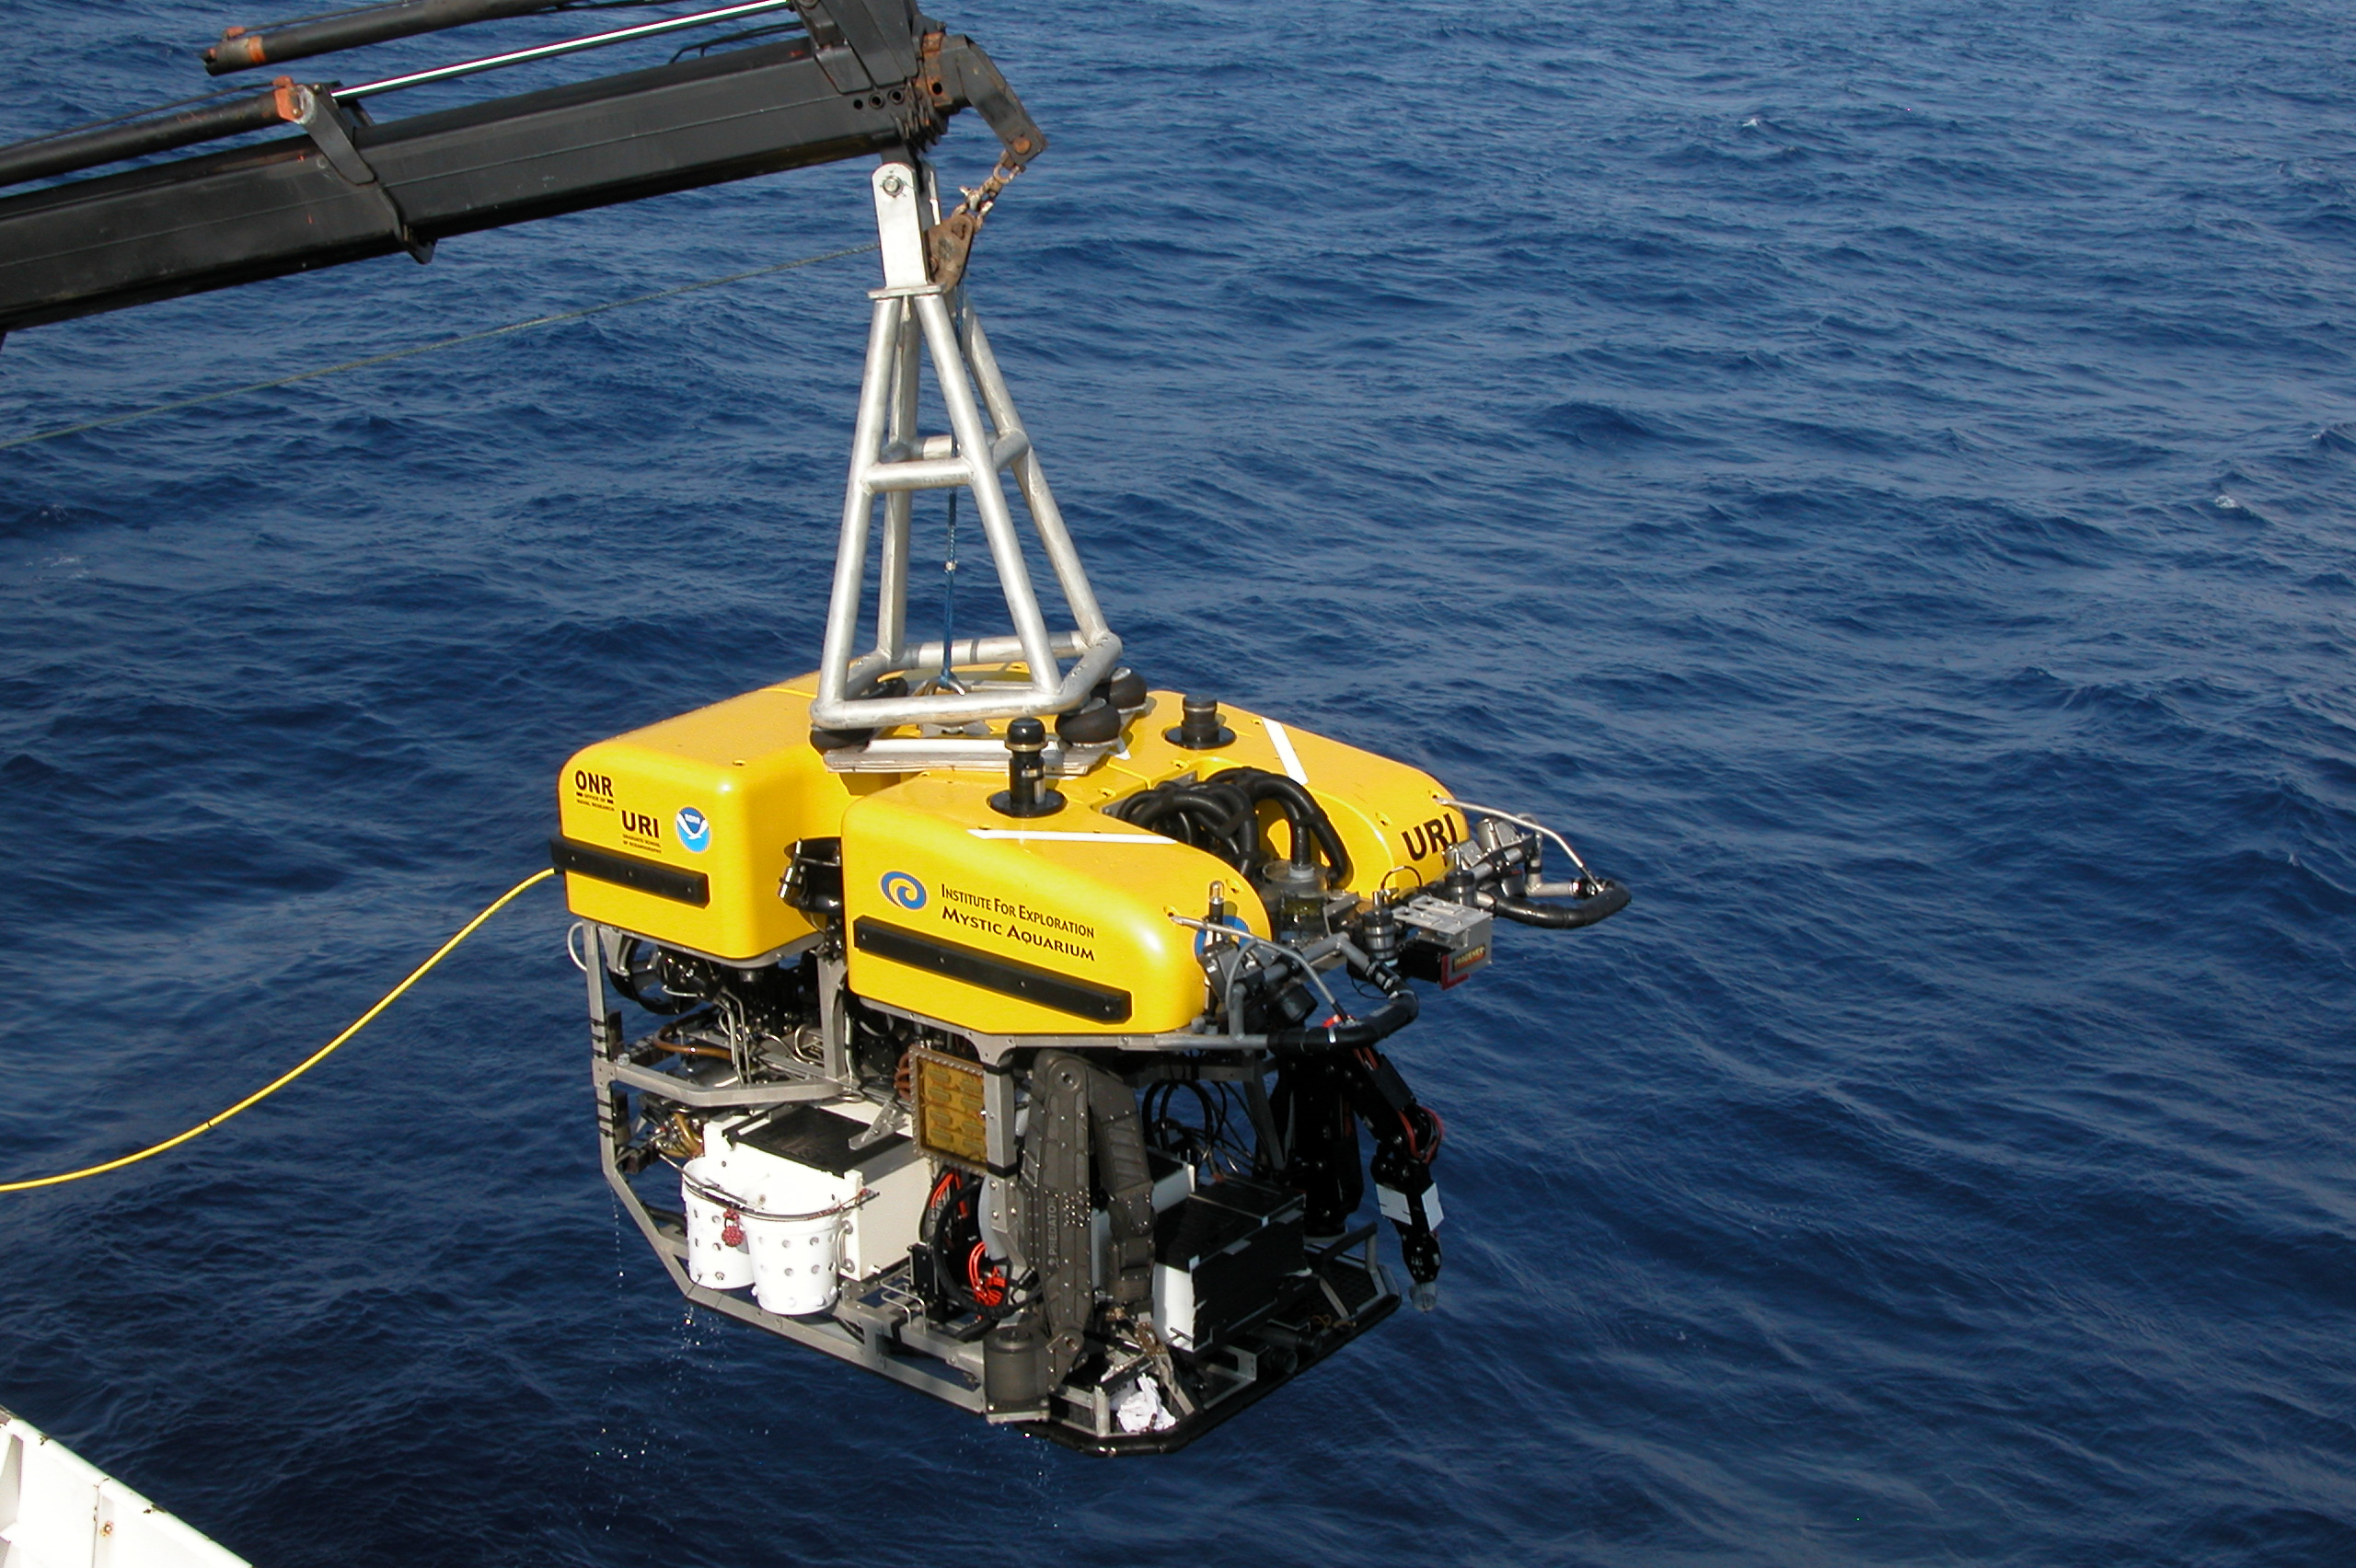 The Use of Remotely Operated Vehicles (ROVs) in Nuclear Decommissioning